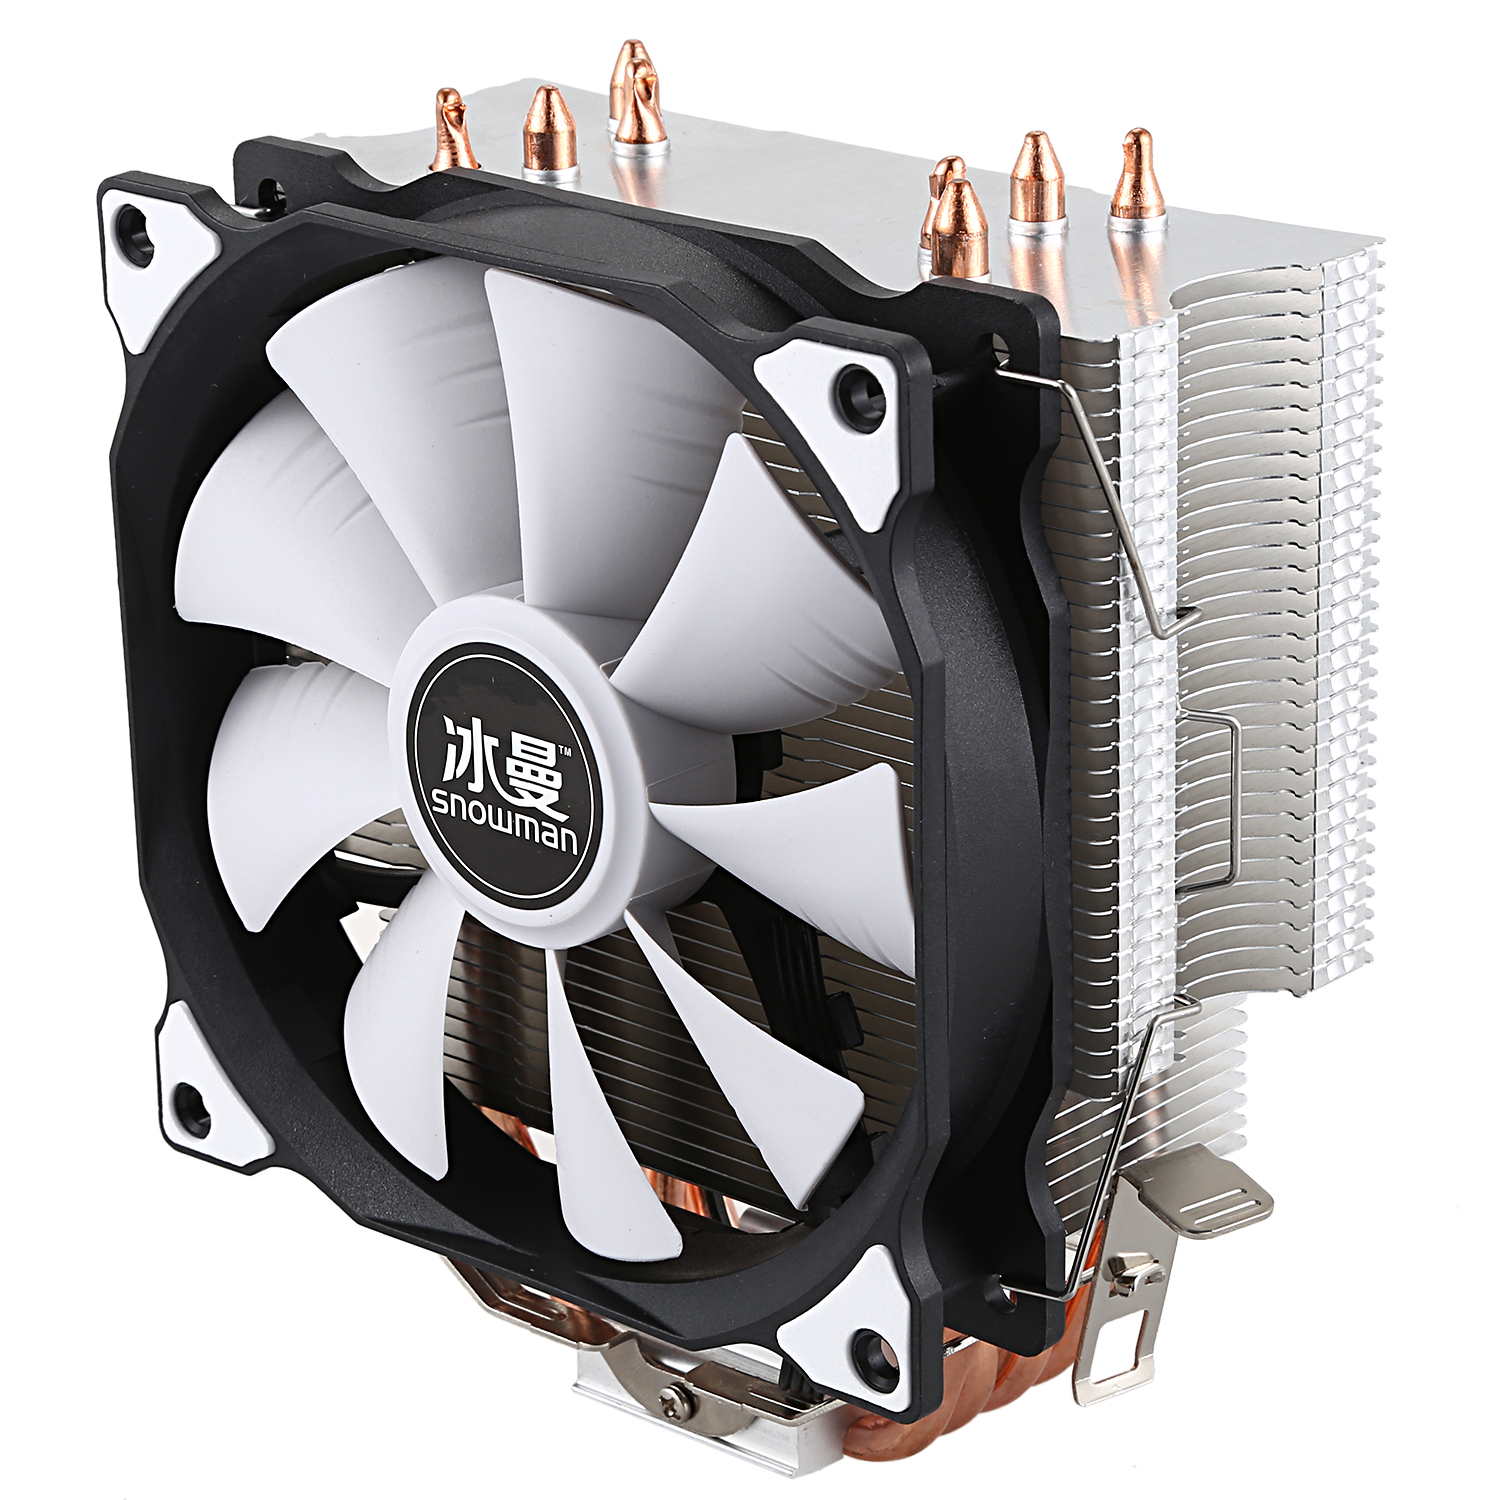 Image 3 - SNOWMAN CPU Cooler Master 5 Direct Contact Heatpipes freeze Tower Cooling System CPU Cooling Fan with PWM Fans-in Fans & Cooling from Computer & Office